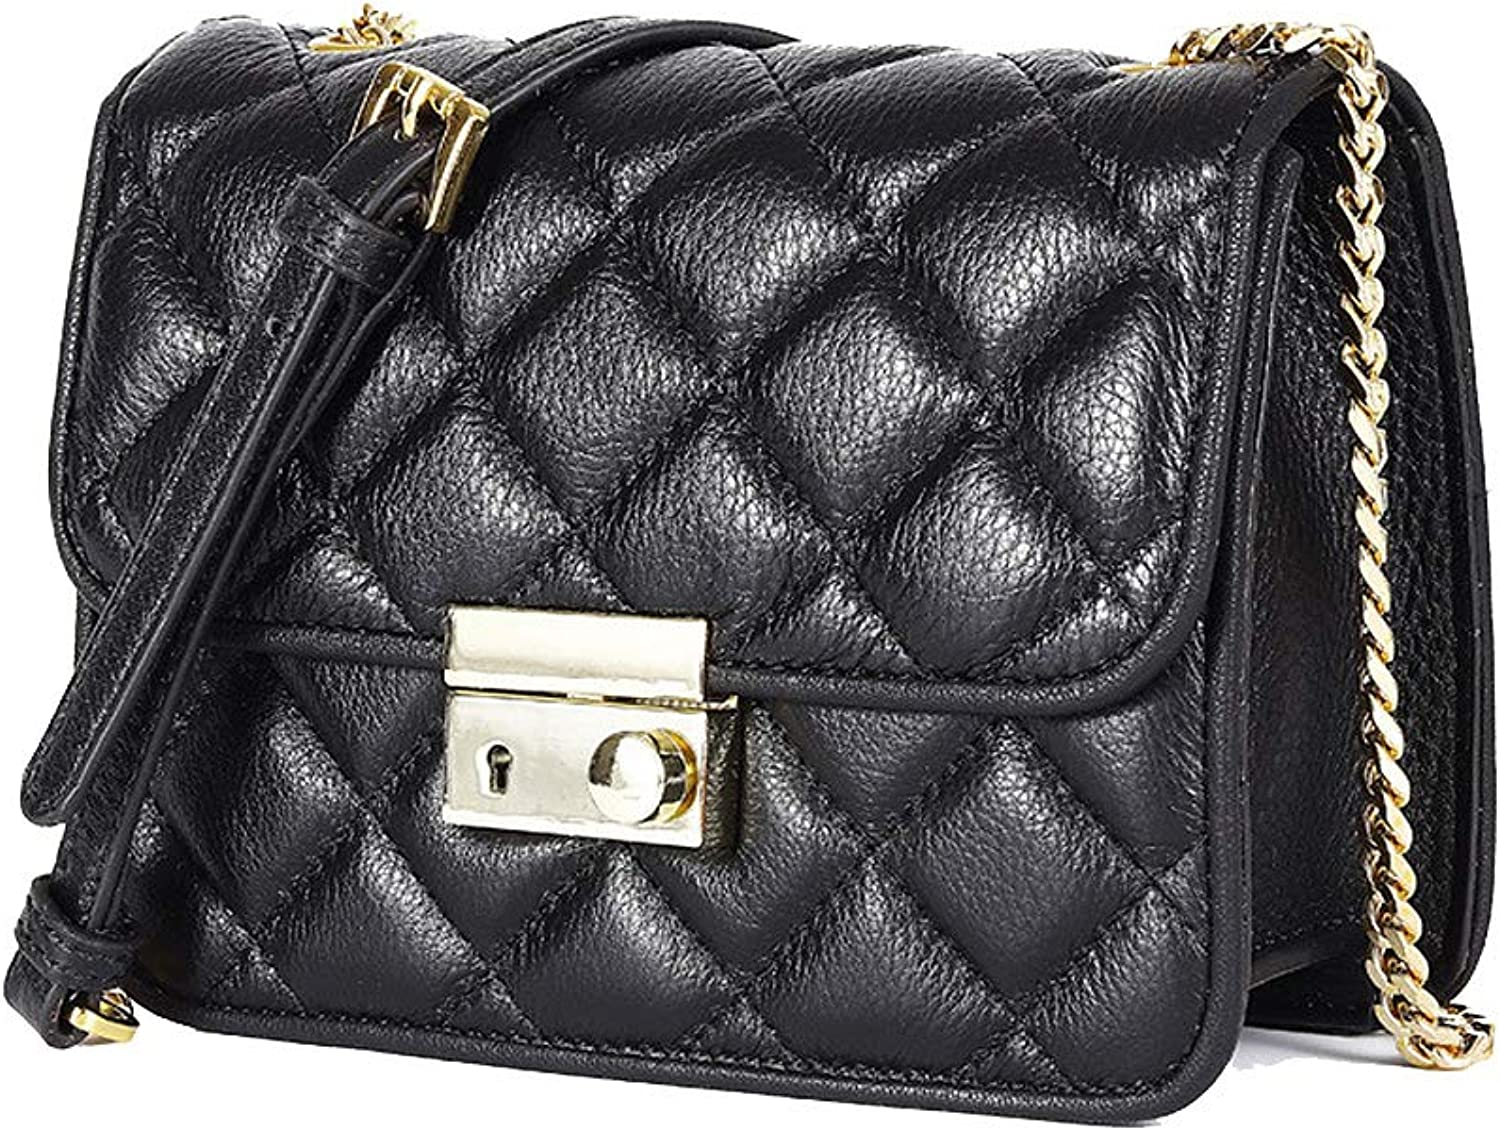 Onzama Women's Genuine Leather Bag Quilted Small Classic Designer Clutches Crossbody Shoulder Purse with Chain